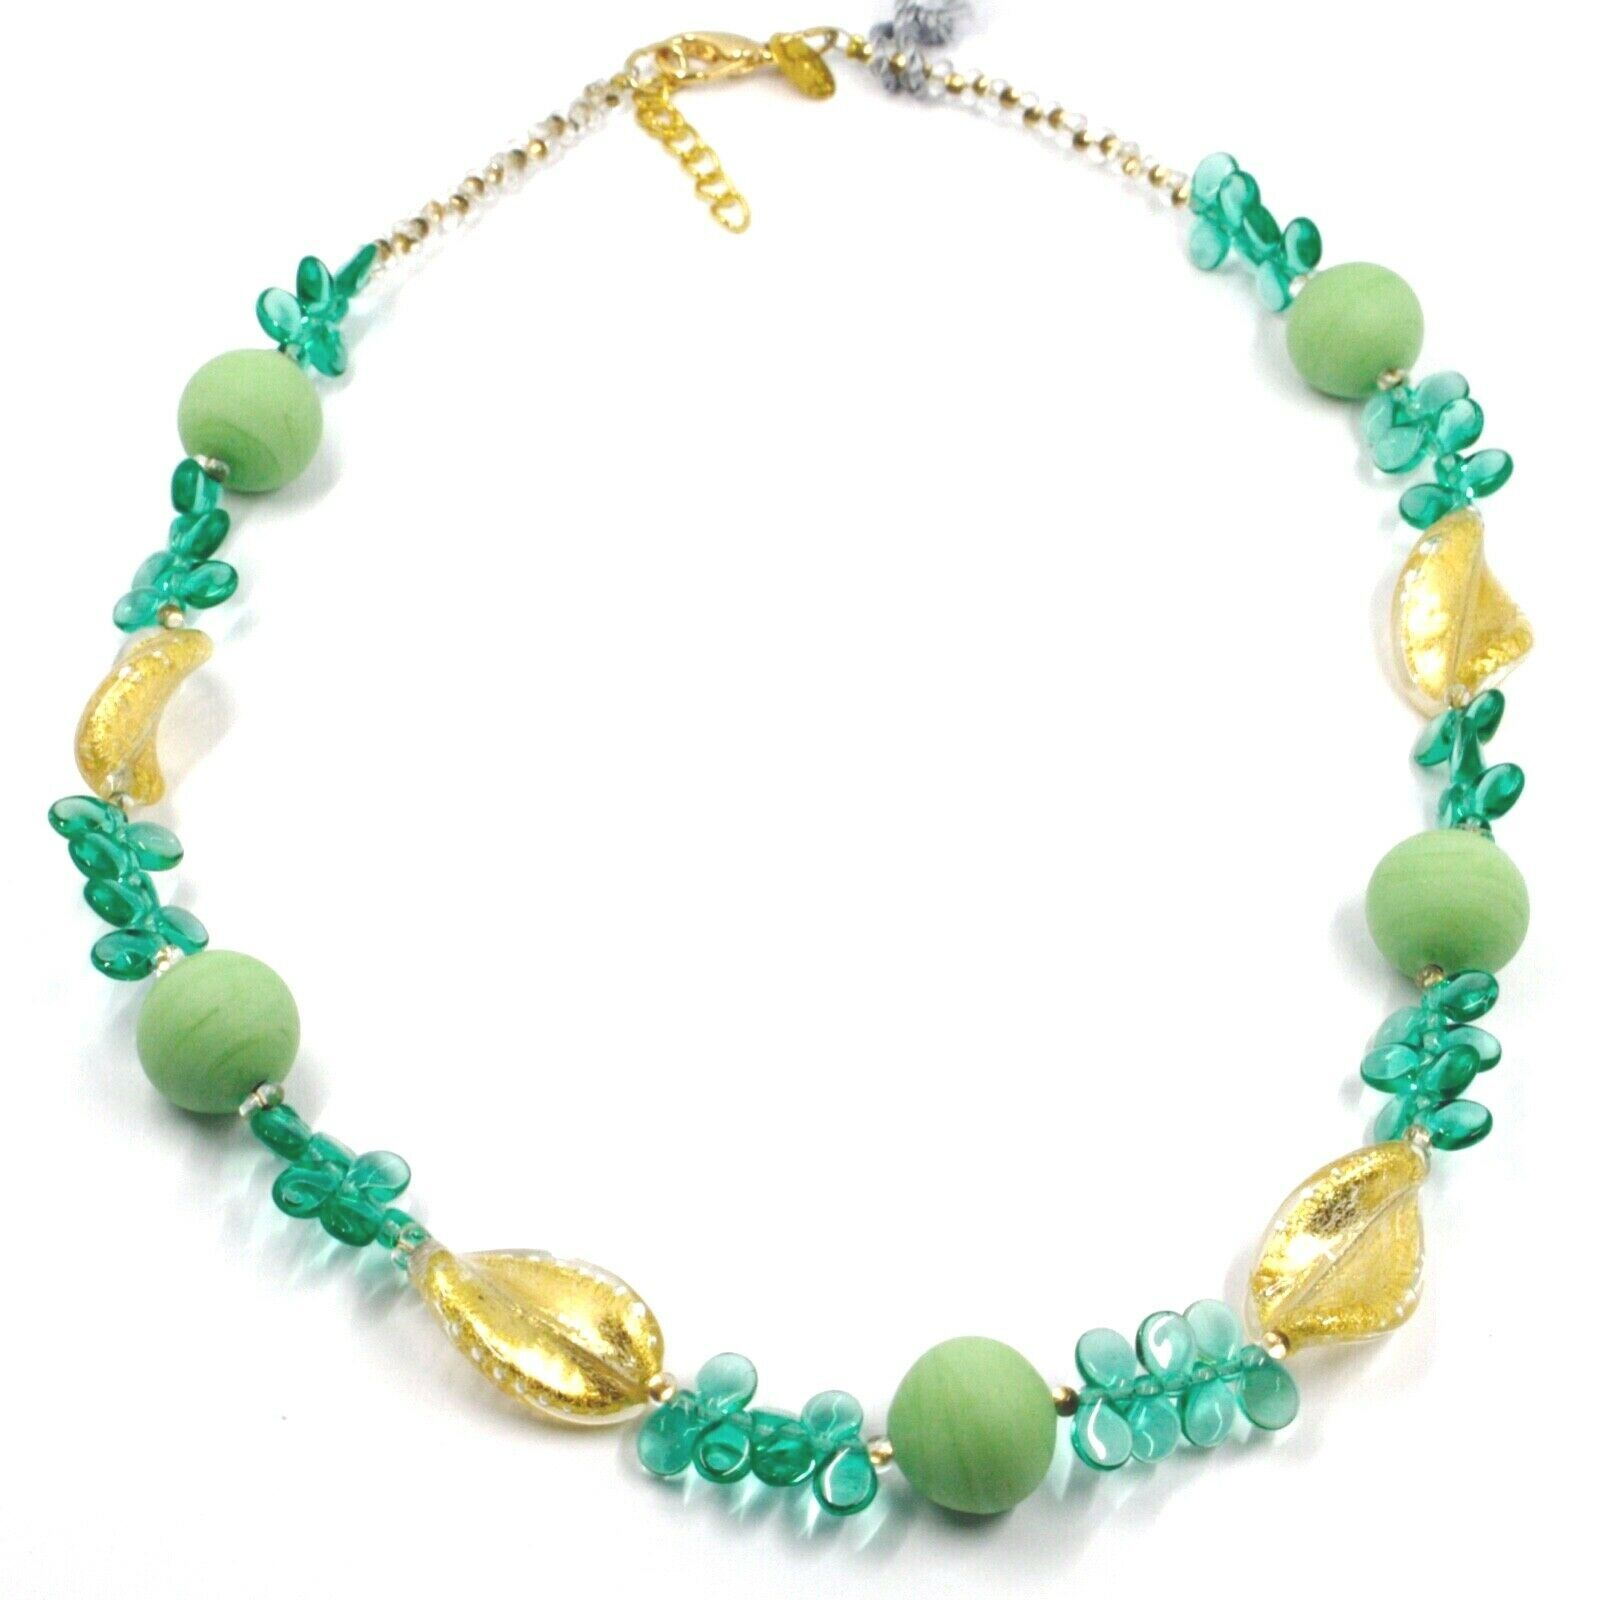 NECKLACE PETALS DROPS, SATIN SPHERE SPIRAL WAVE GREEN YELLOW MURANO GLASS ITALY